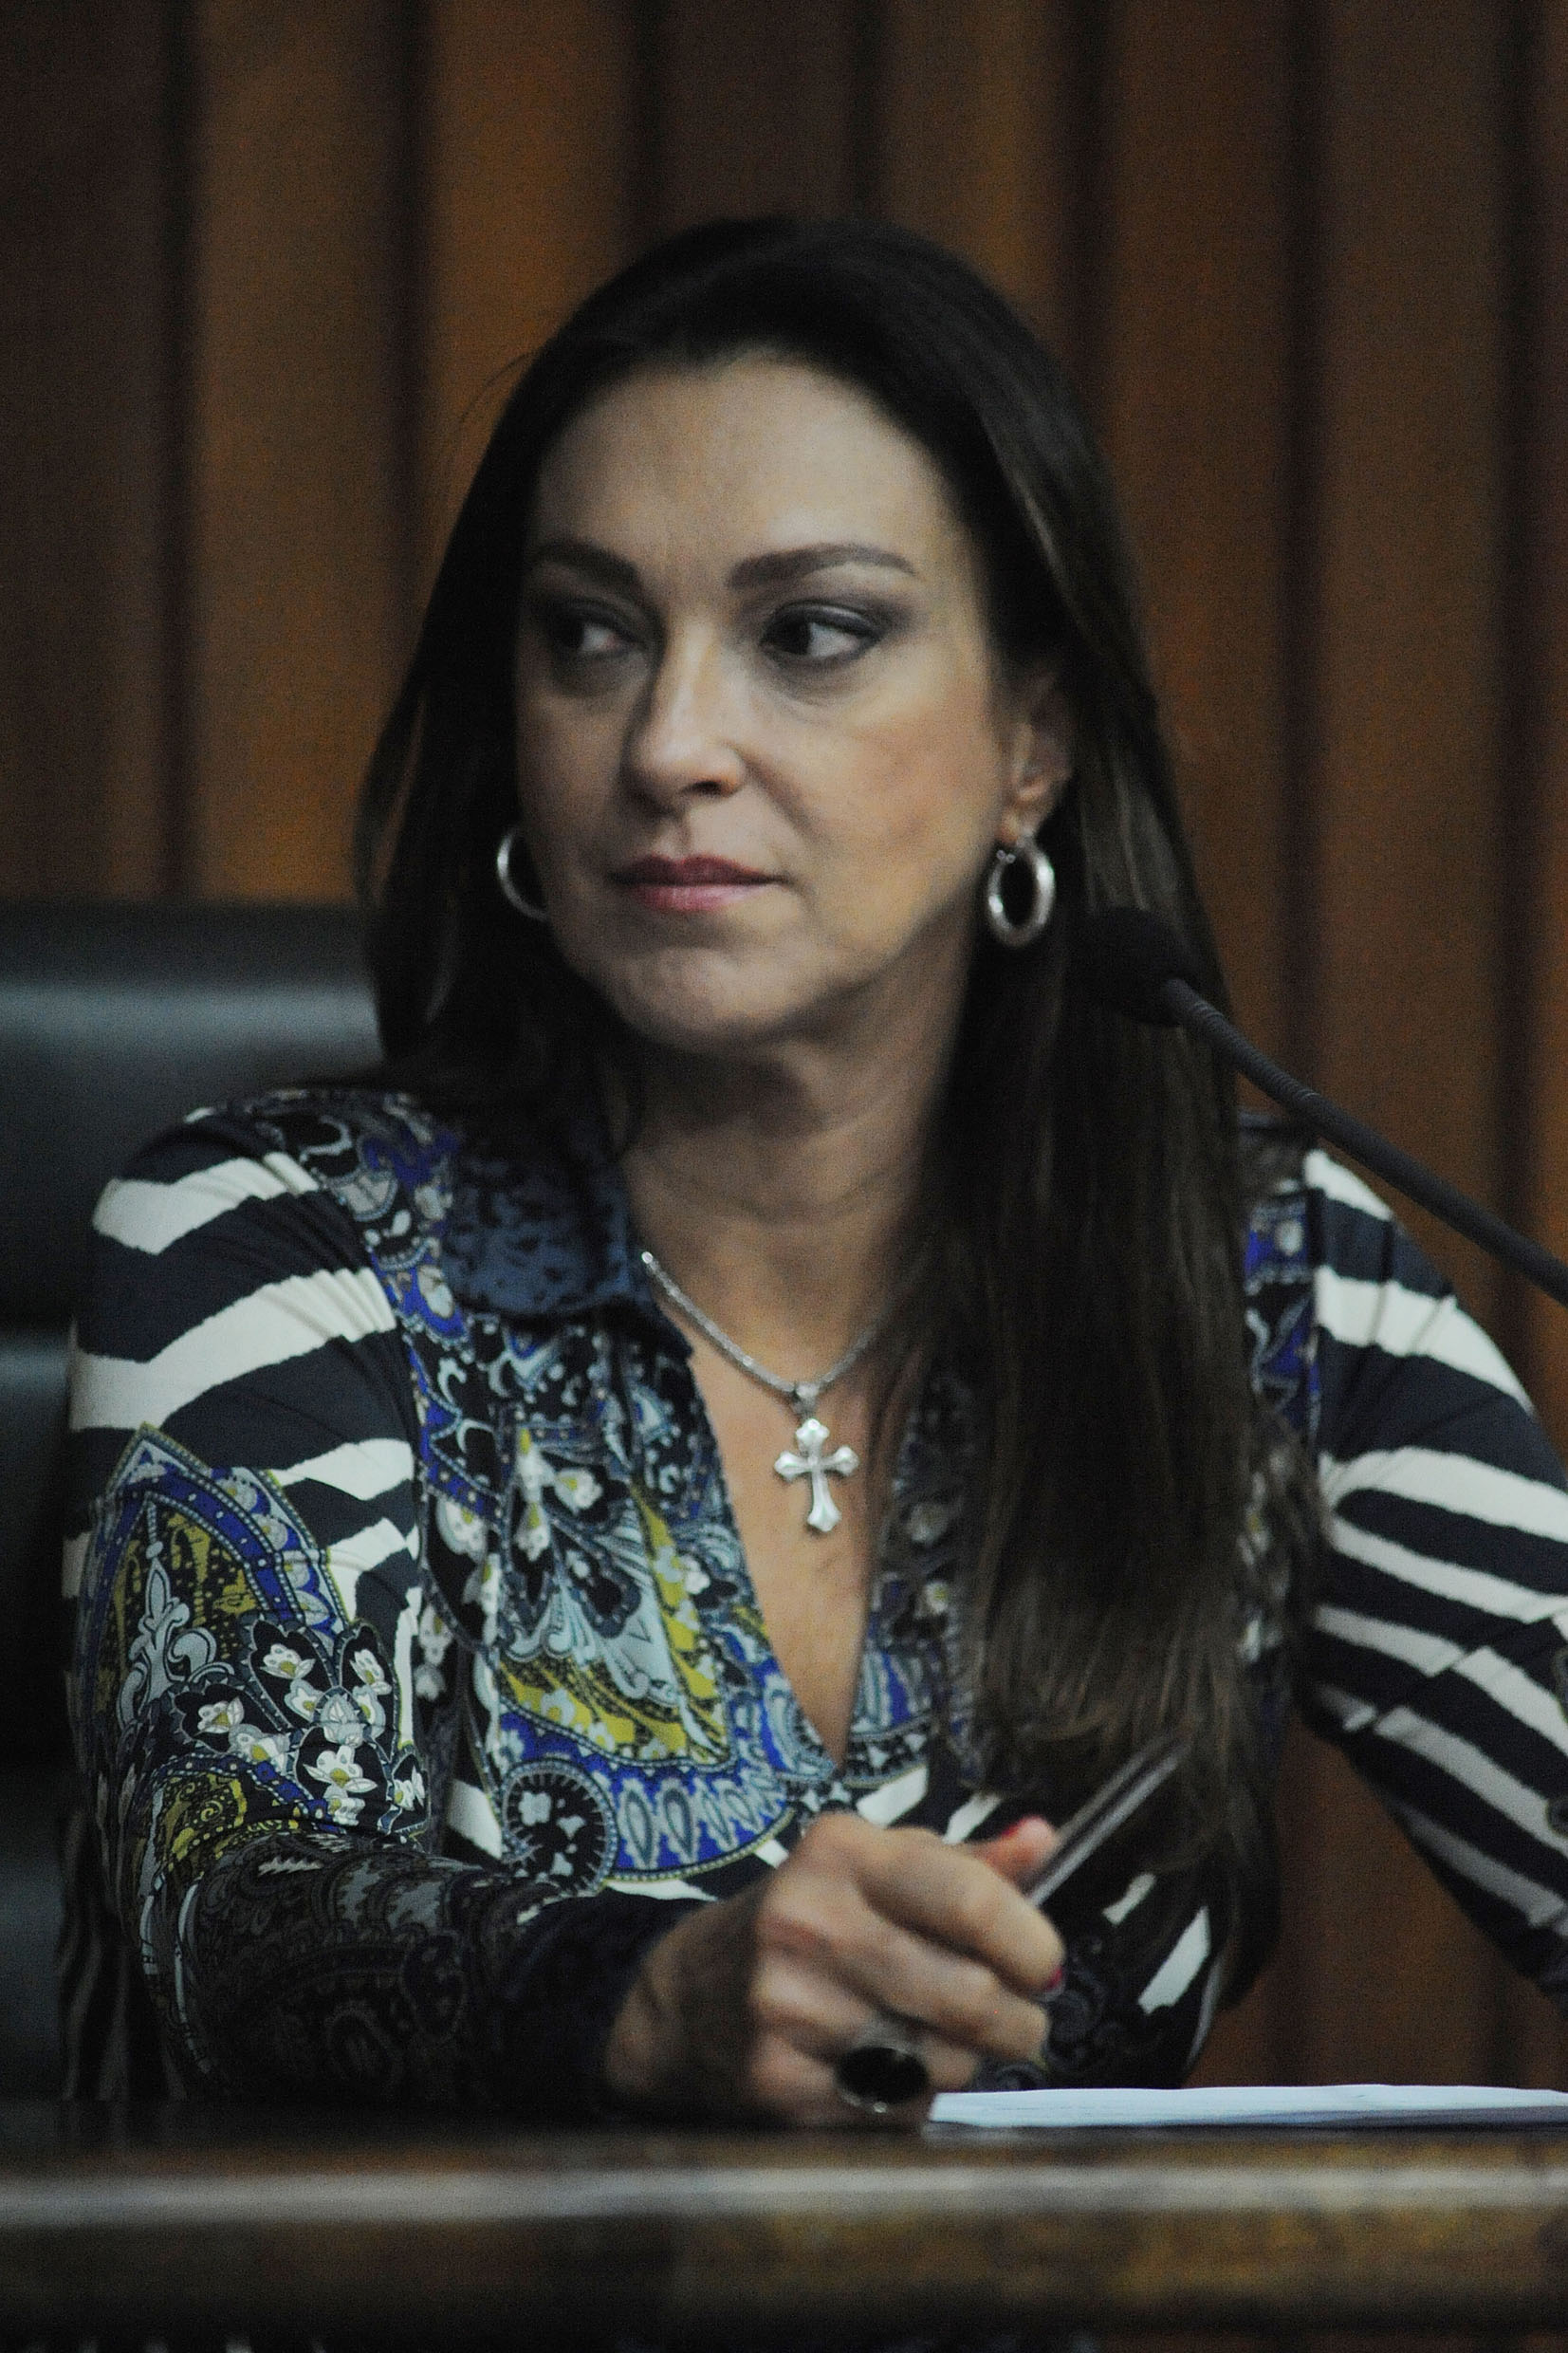 Rita Passos continua como vice-presidente. <a style='float:right' href='https://www3.al.sp.gov.br/repositorio/noticia/N-05-2014/fg161584.jpg' target=_blank><img src='/_img/material-file-download-white.png' width='14px' alt='Clique para baixar a imagem'></a>